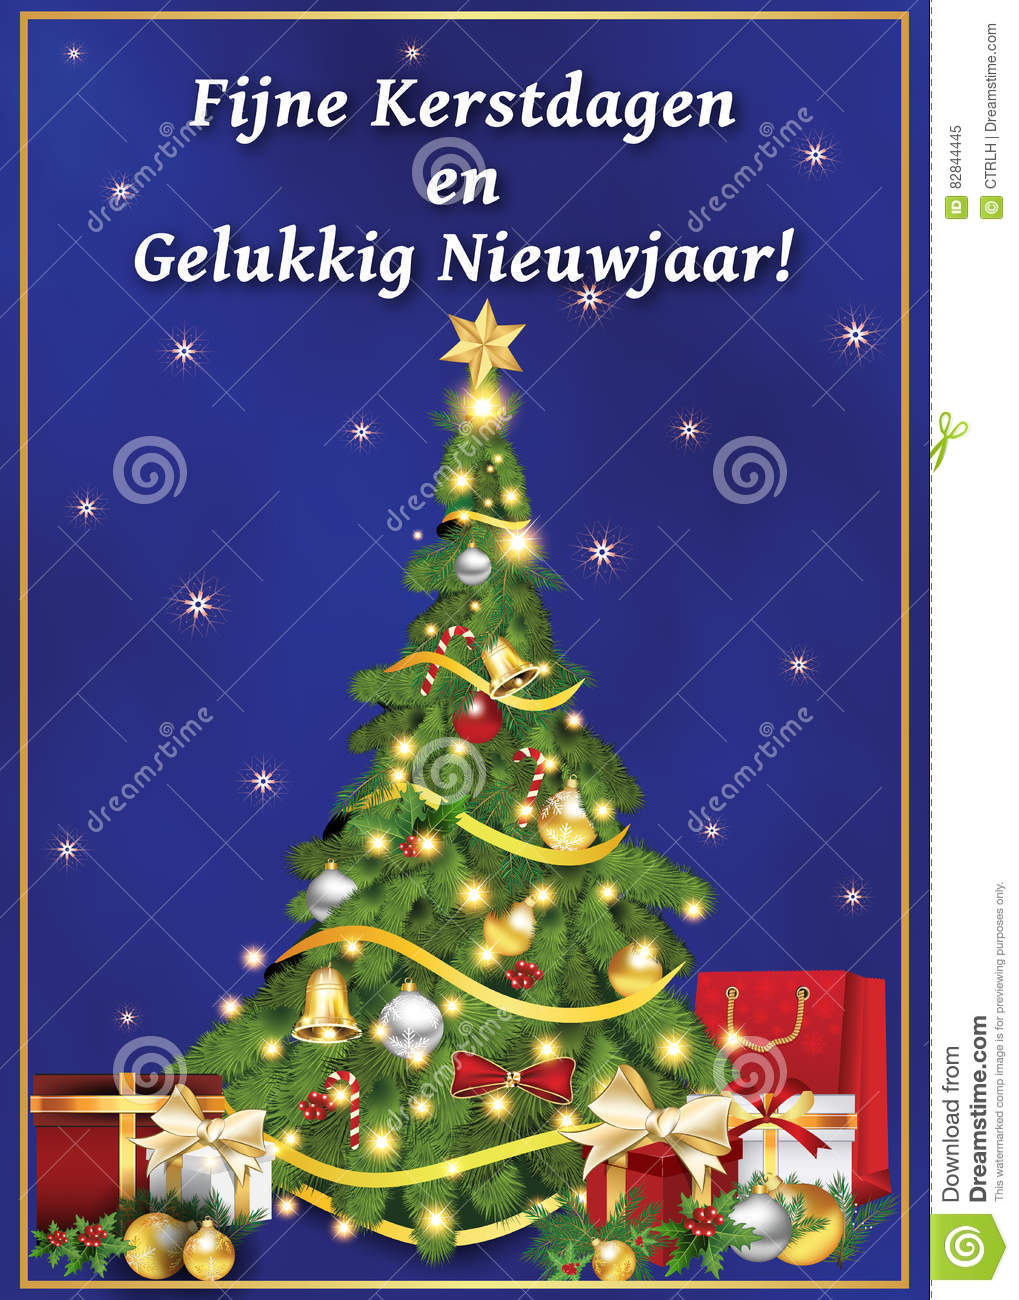 Dutch Greeting Card For Winter Holiday. Stock Illustration ...